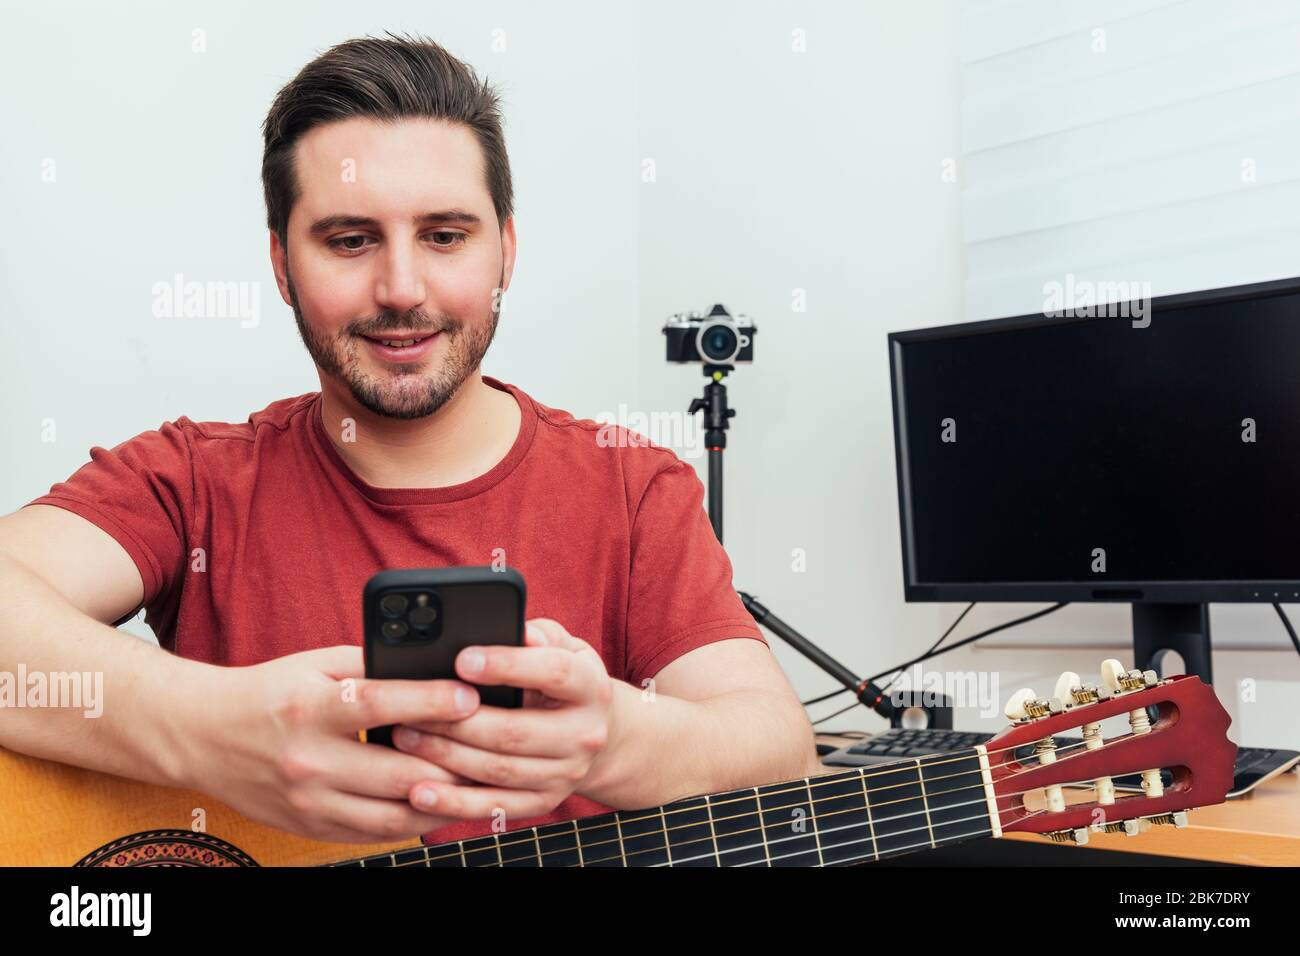 Blogger checking his phone before giving the guitar lesson from his home recording studio. Learning online concept. Stock Photo